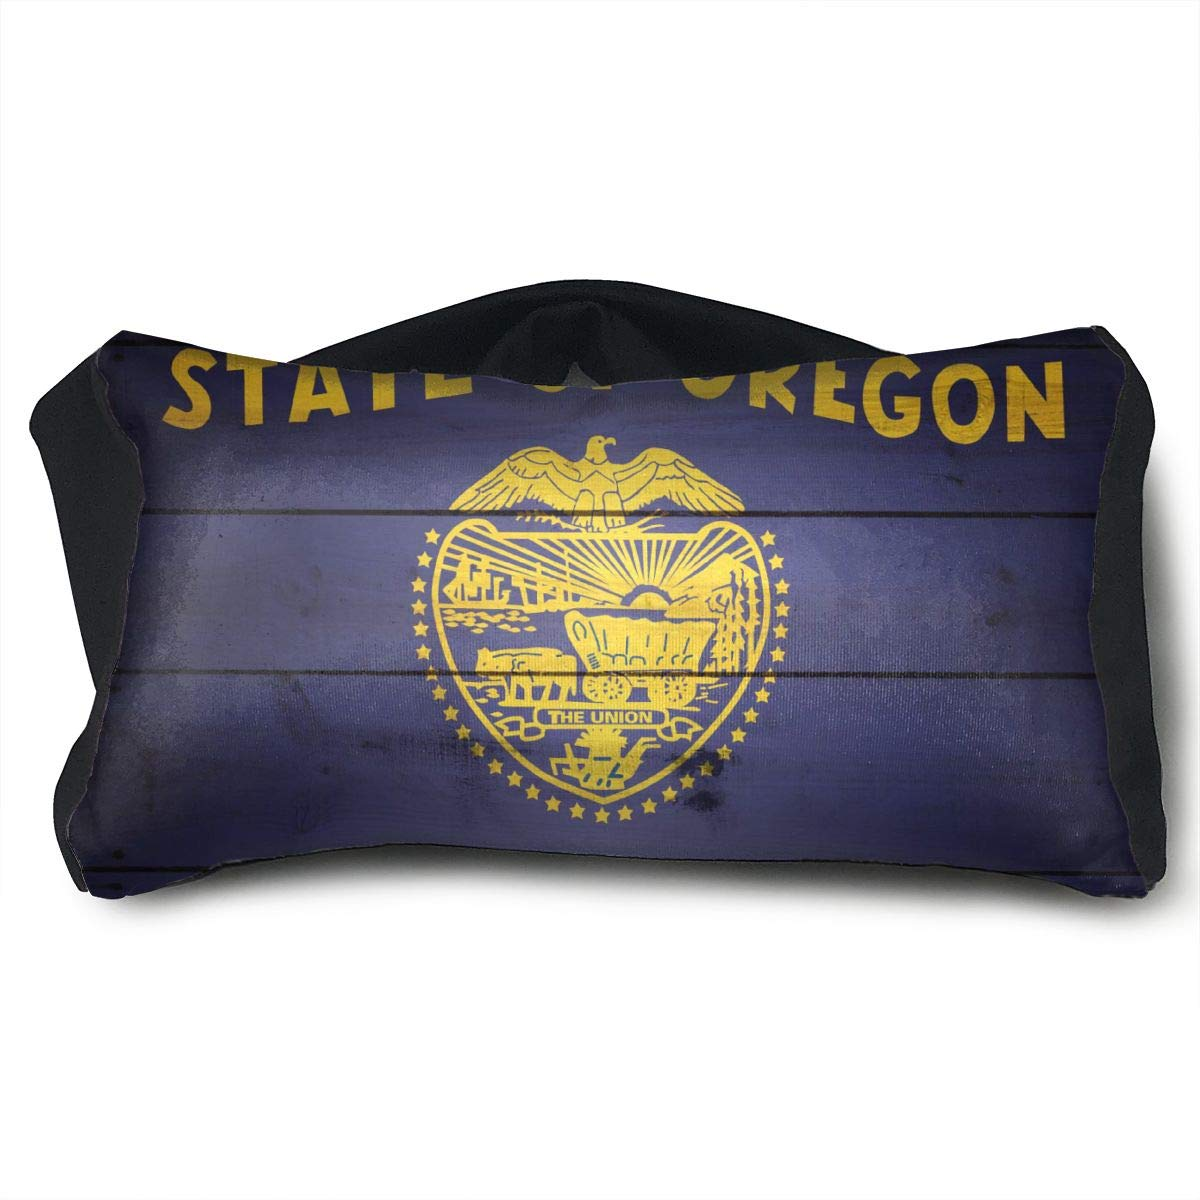 GLing-LIFE Oregon State Flag Wood Texture Portable Voyage Pillow Travel Pillow and Eye Mask 2 in 1 Neck Head Support for Airplanes, Cars, Office Naps, Camping, Trains